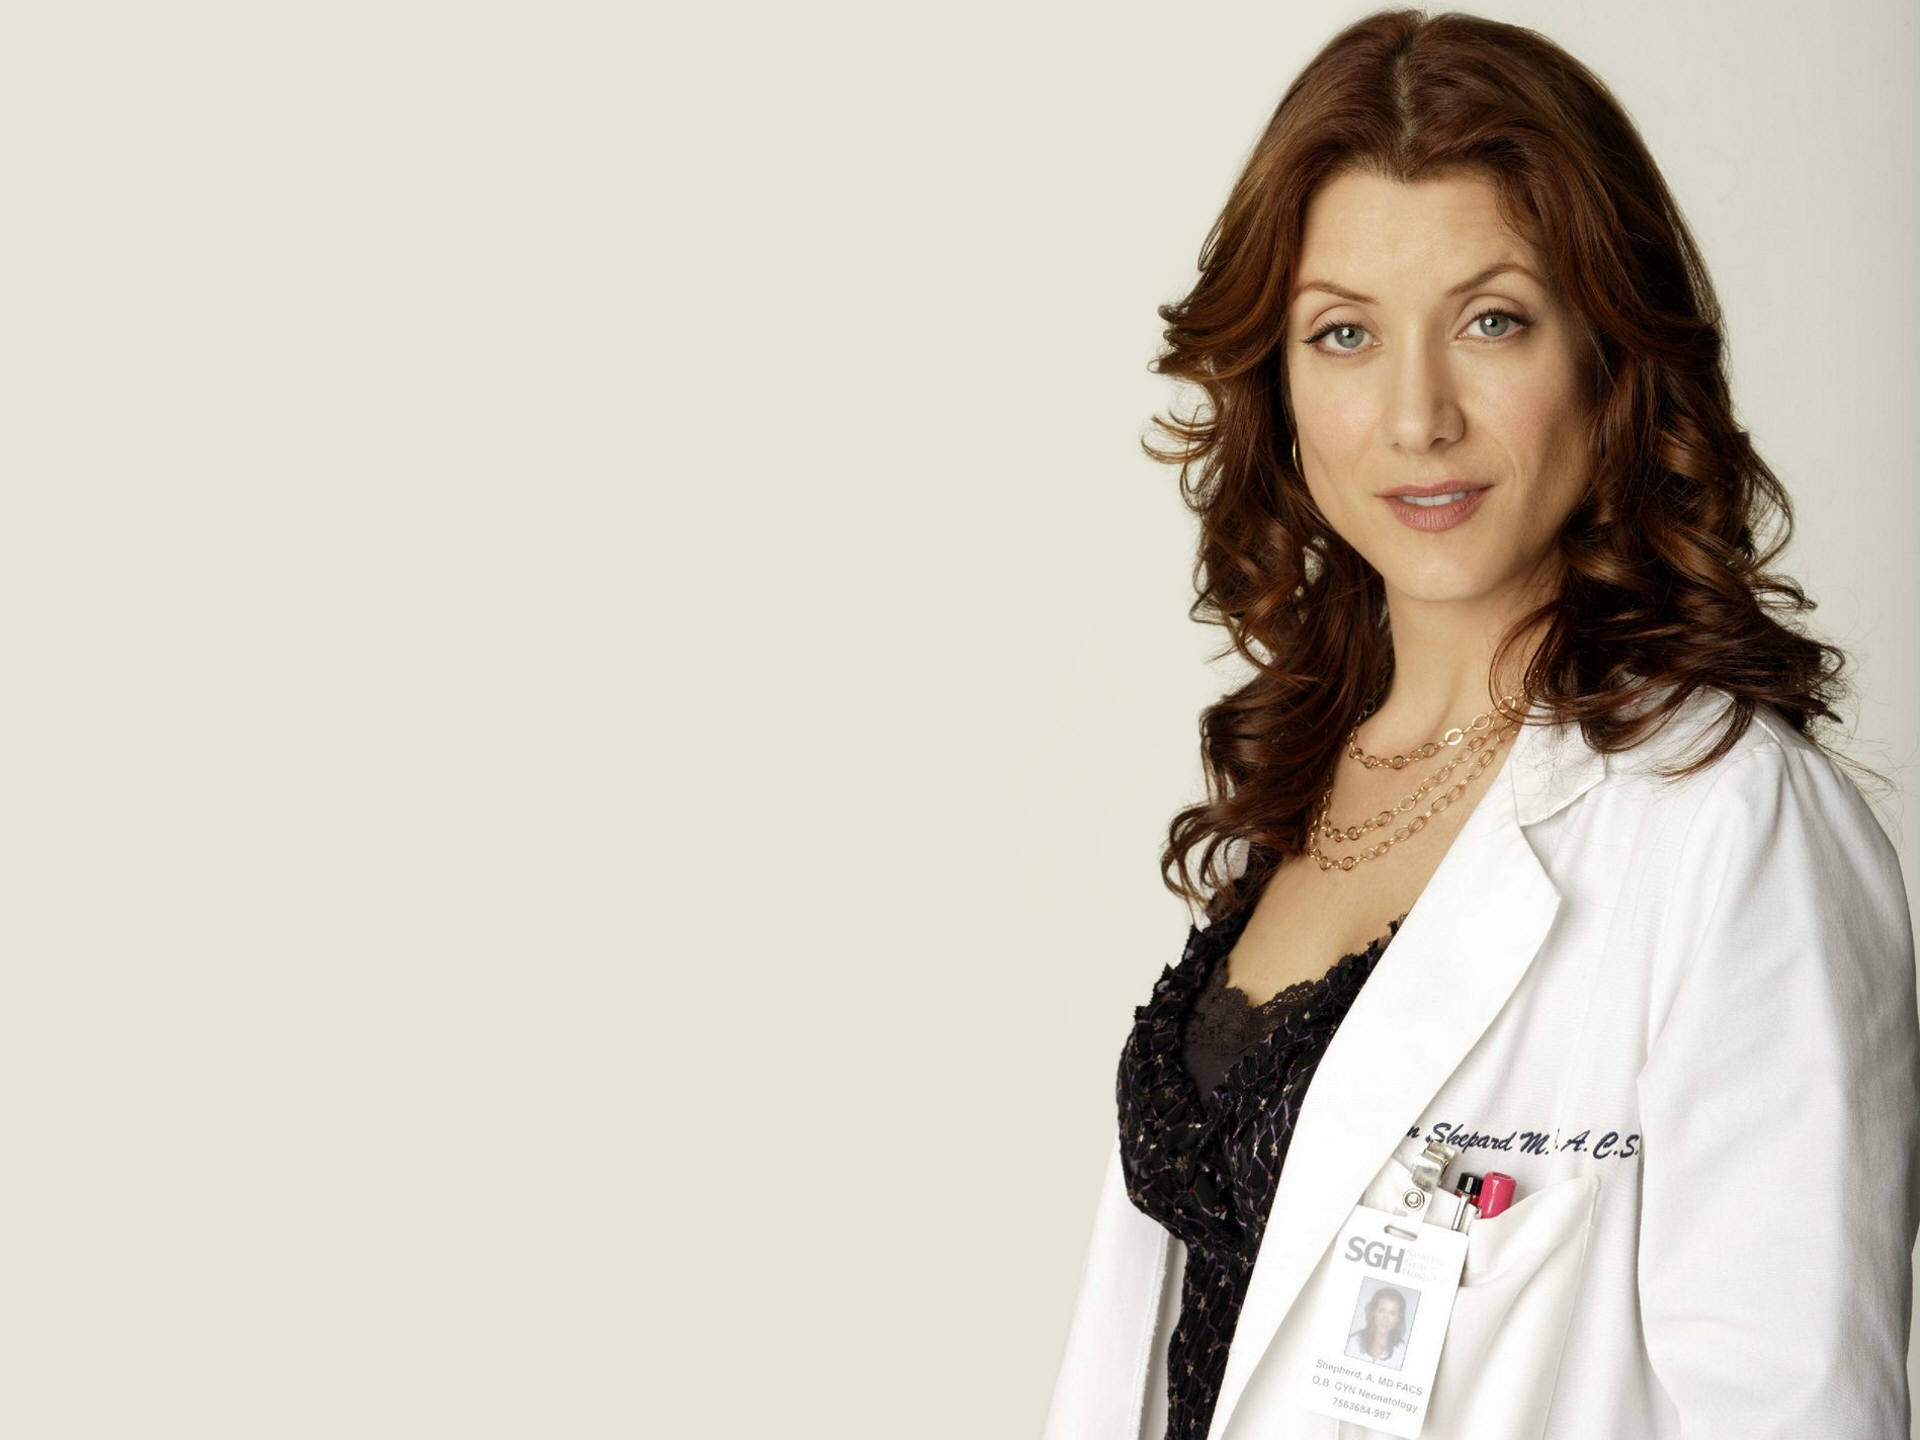 kate walsh actress wallpaper 64031